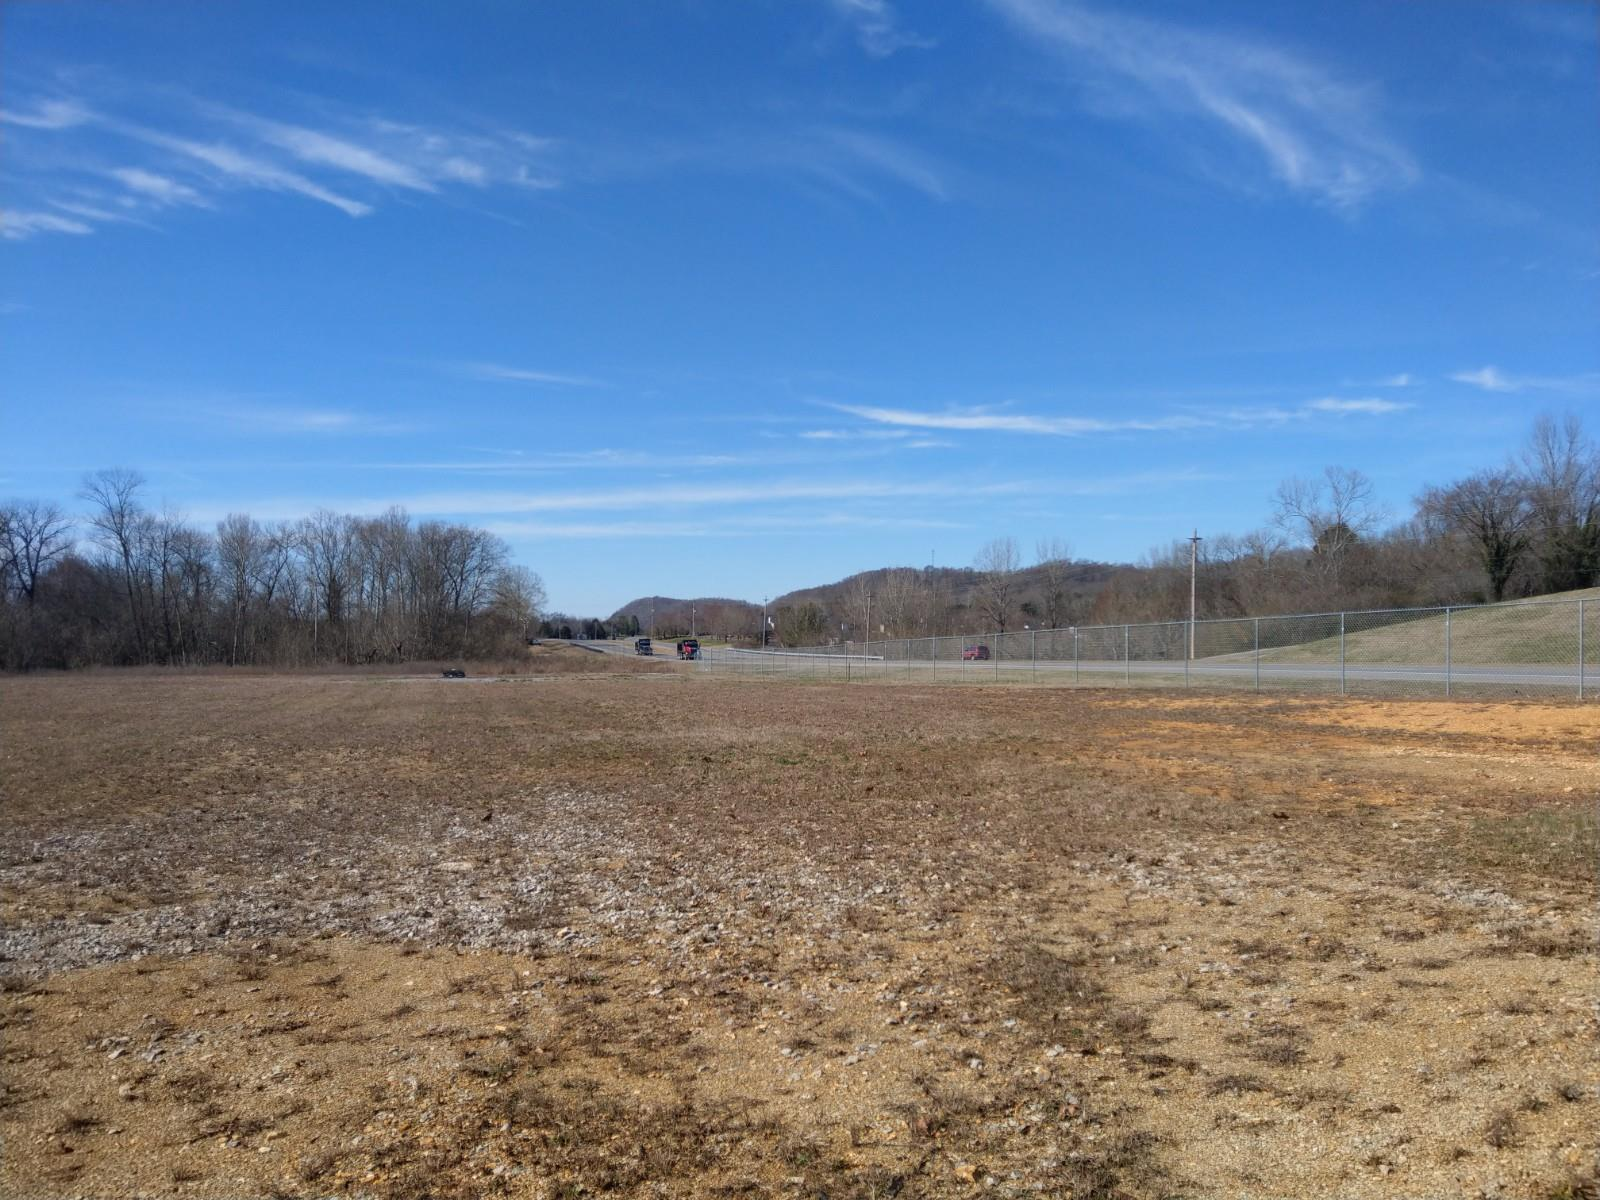 0 Hwy 12, Ashland City, TN 37015 - Ashland City, TN real estate listing